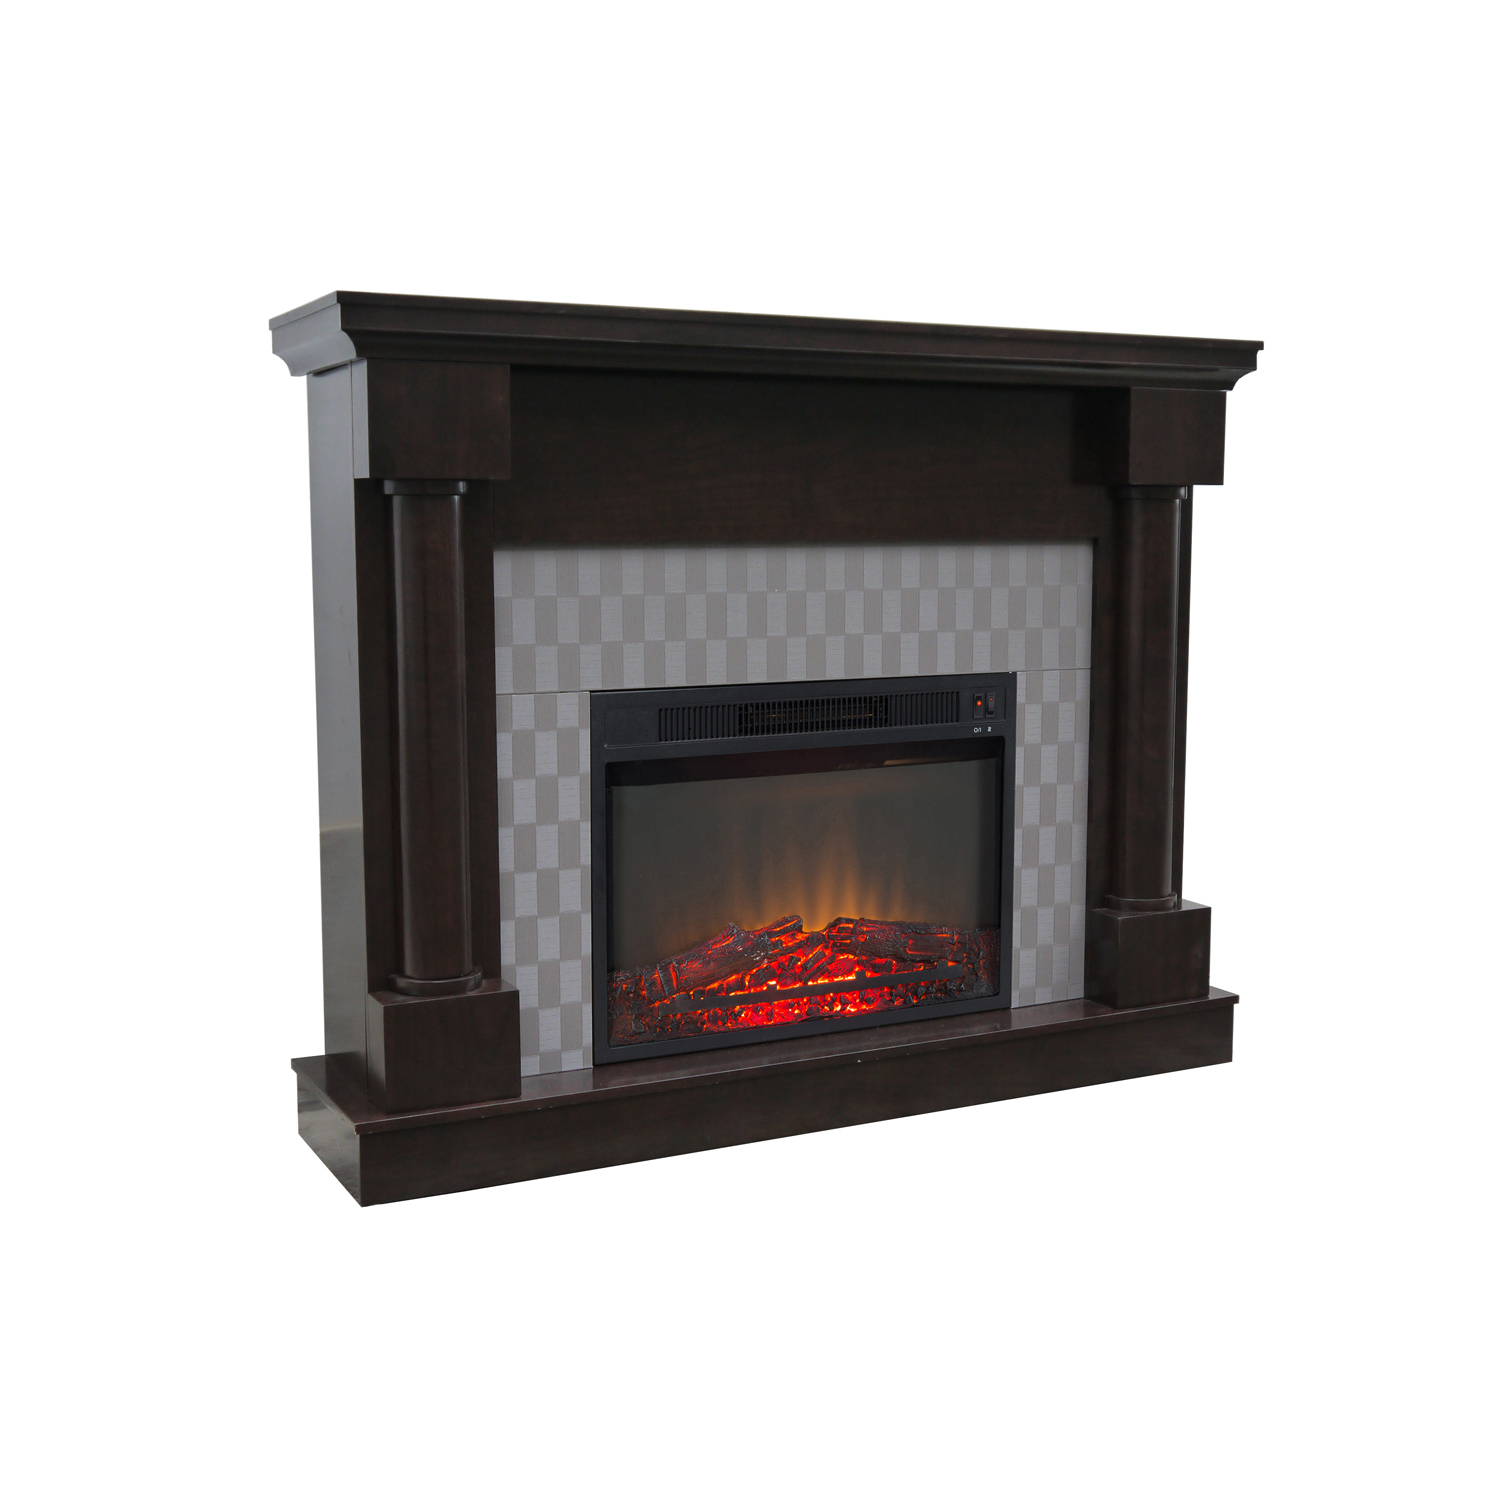 "Decor Flame Electric Fireplace with 48"" Mantle"